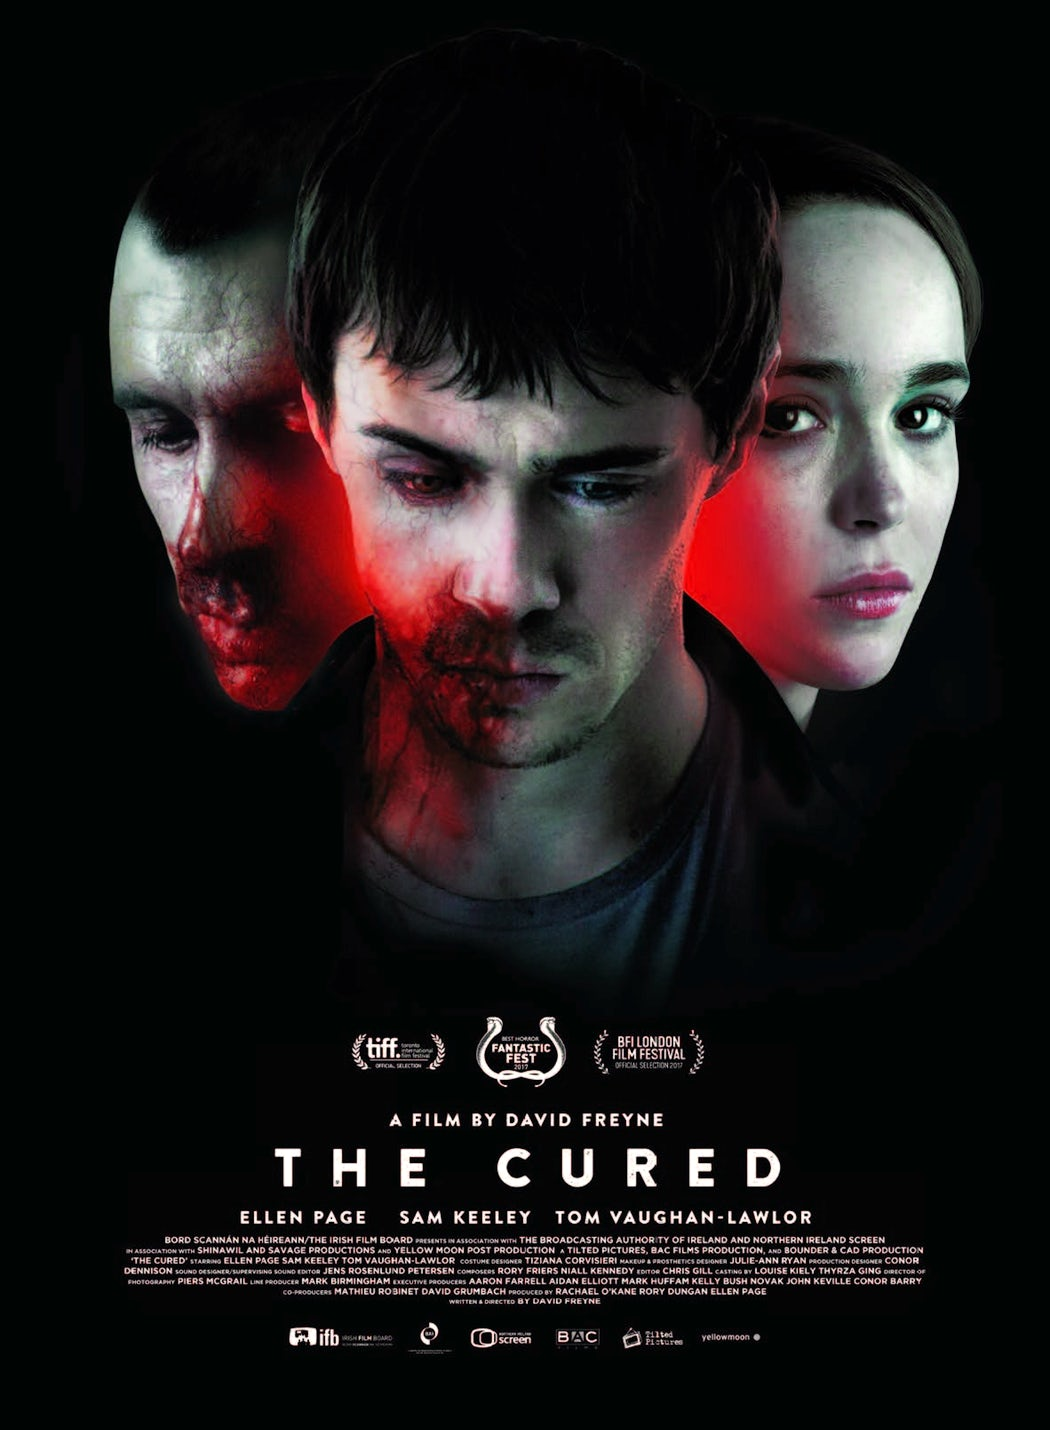 THE-CURED_80x110-low-resolution